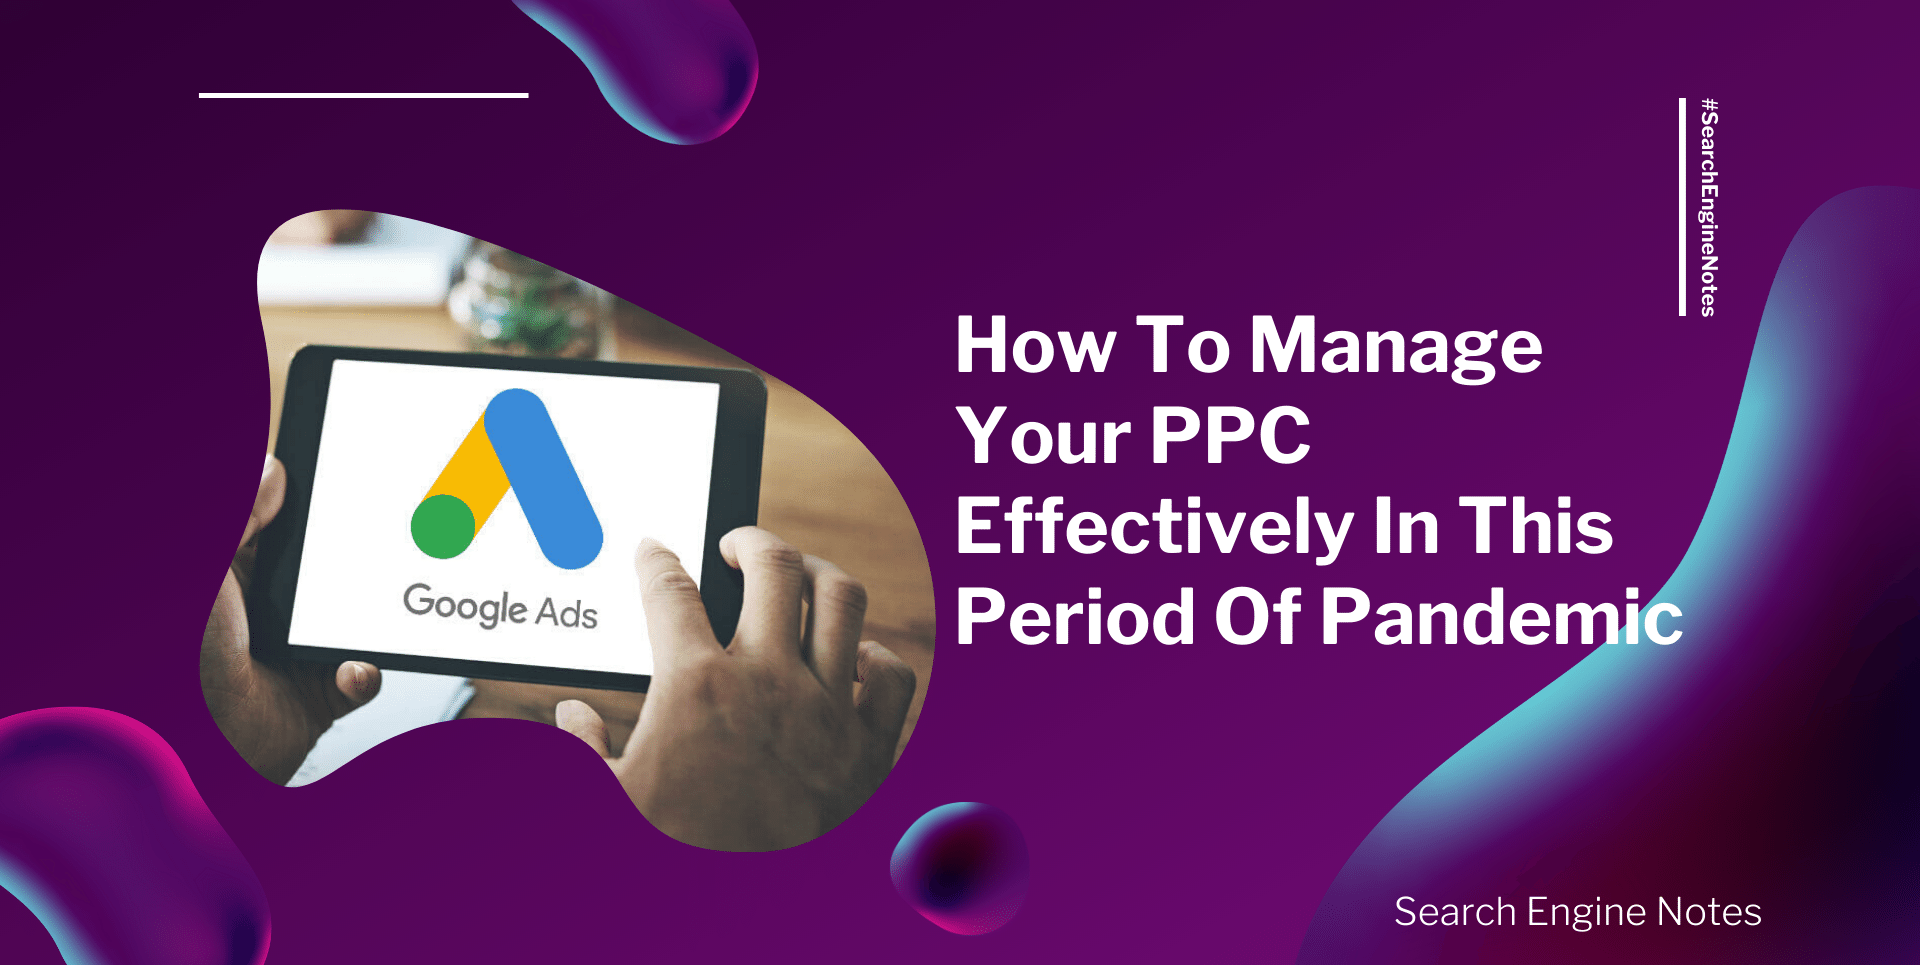 How To Manage Your PPC Effectively In This Period Of Pandemic